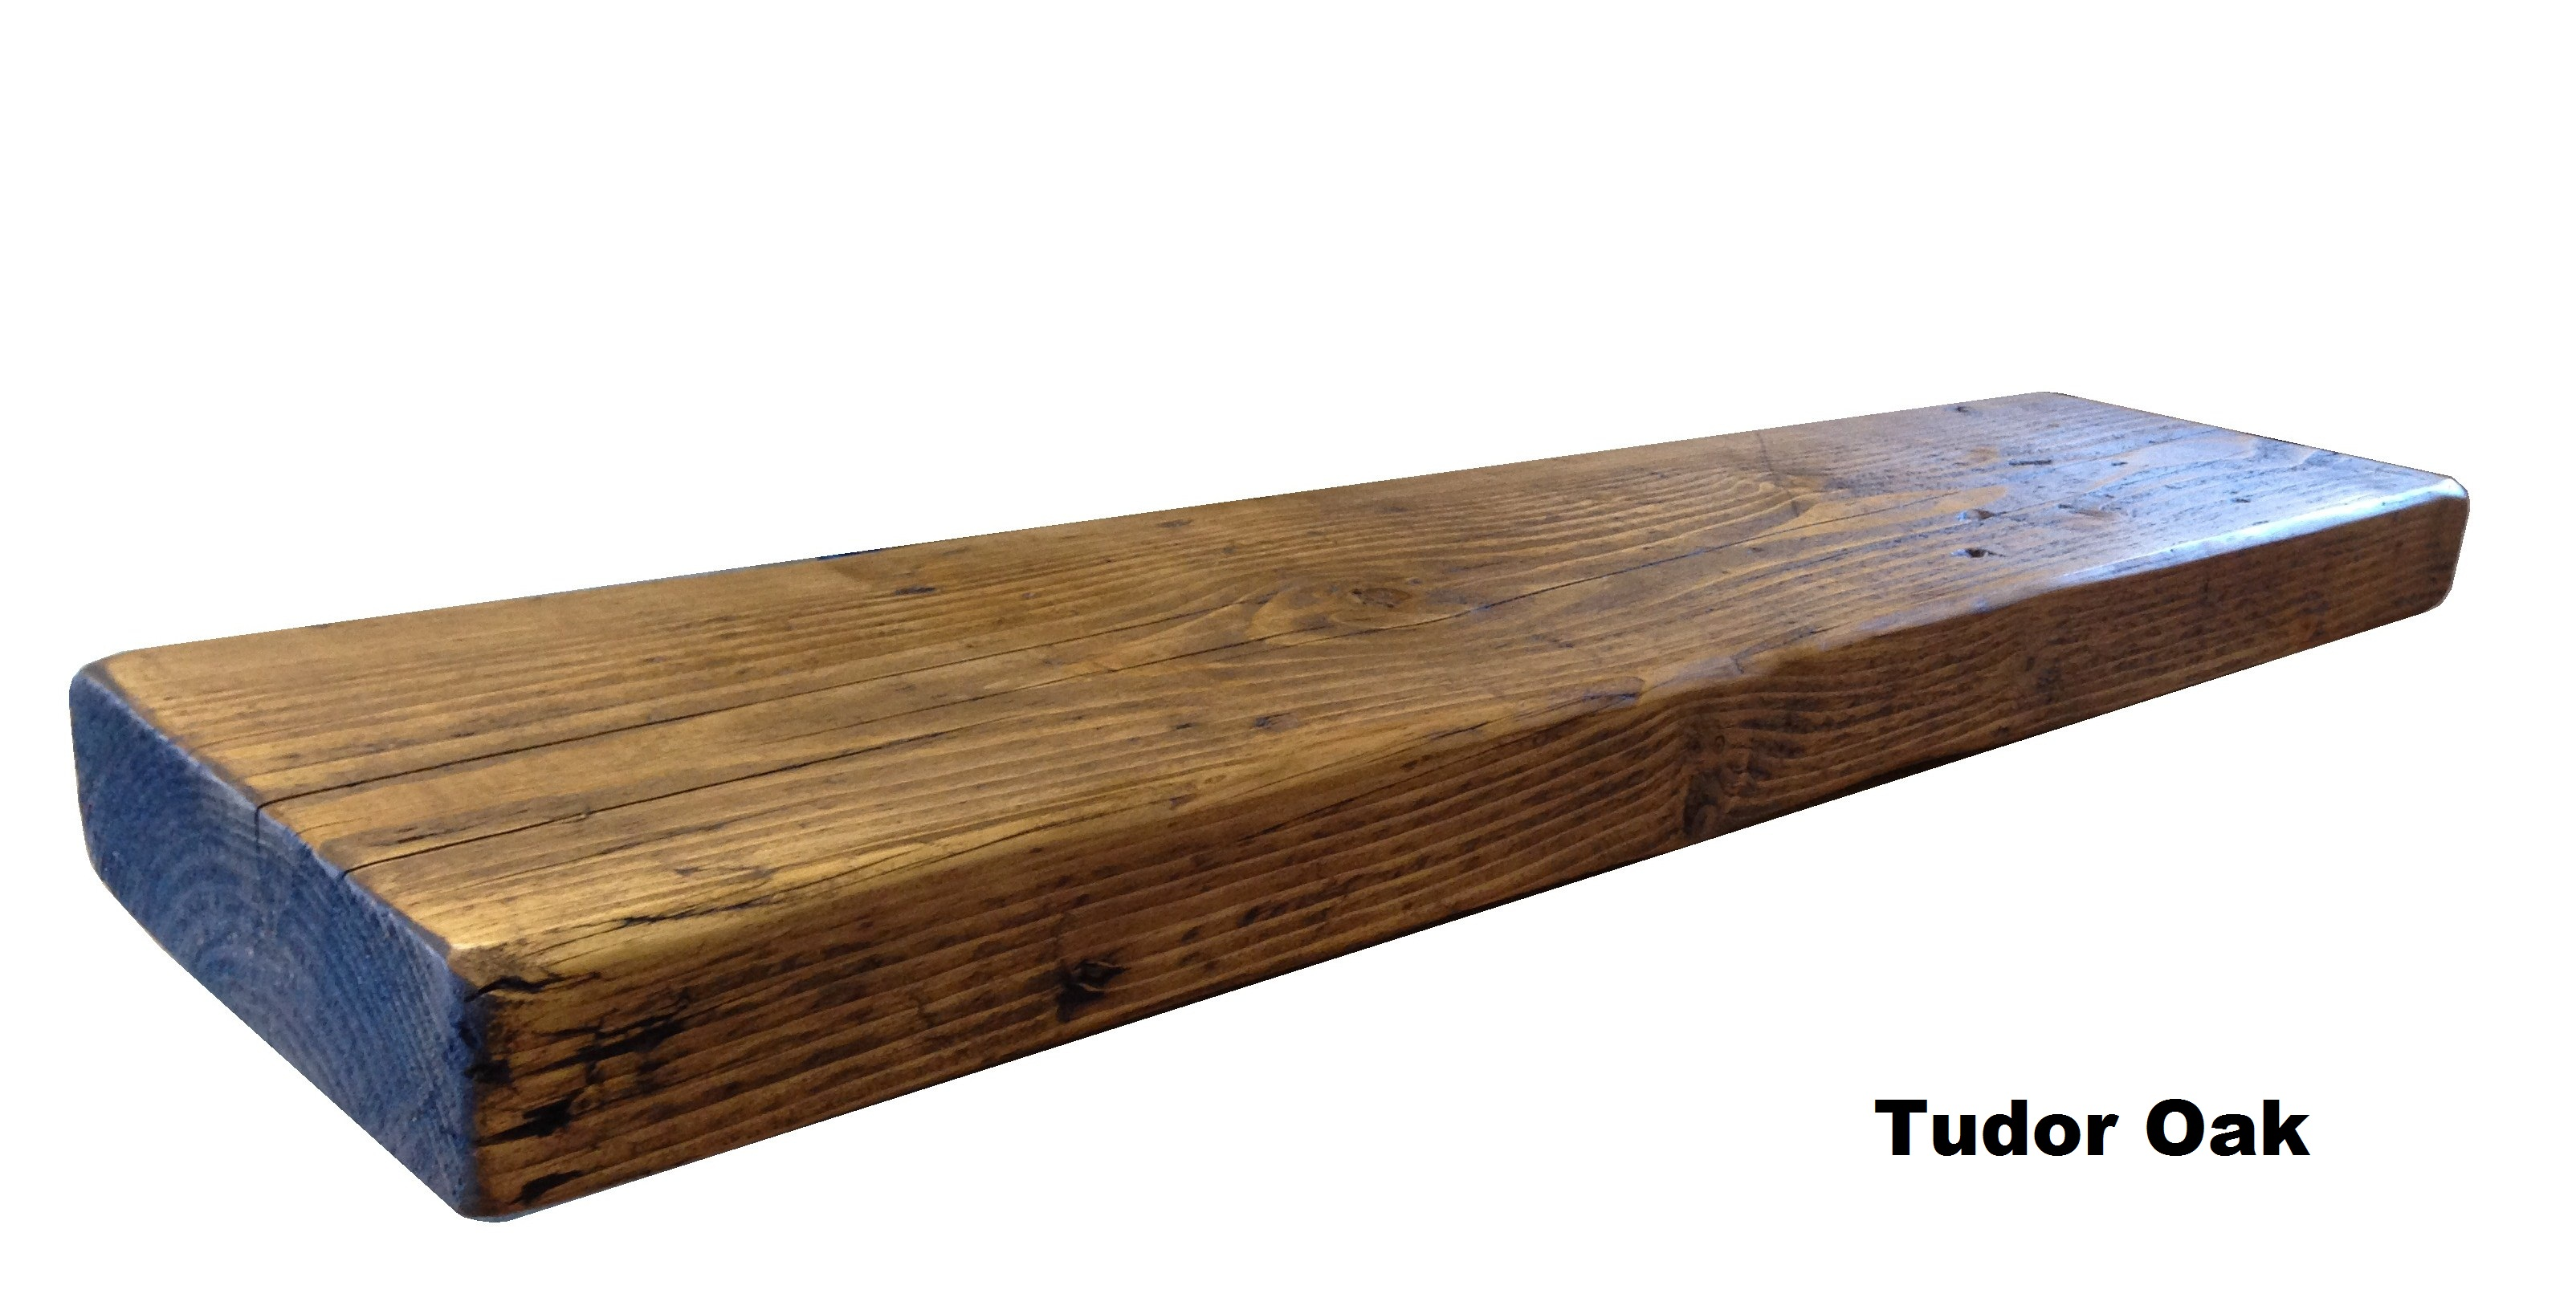 Superb img of Details about RECLAIMED CHUNKY FLOATING SHELF SHELVES WOODEN. with #30549B color and 3208x1632 pixels